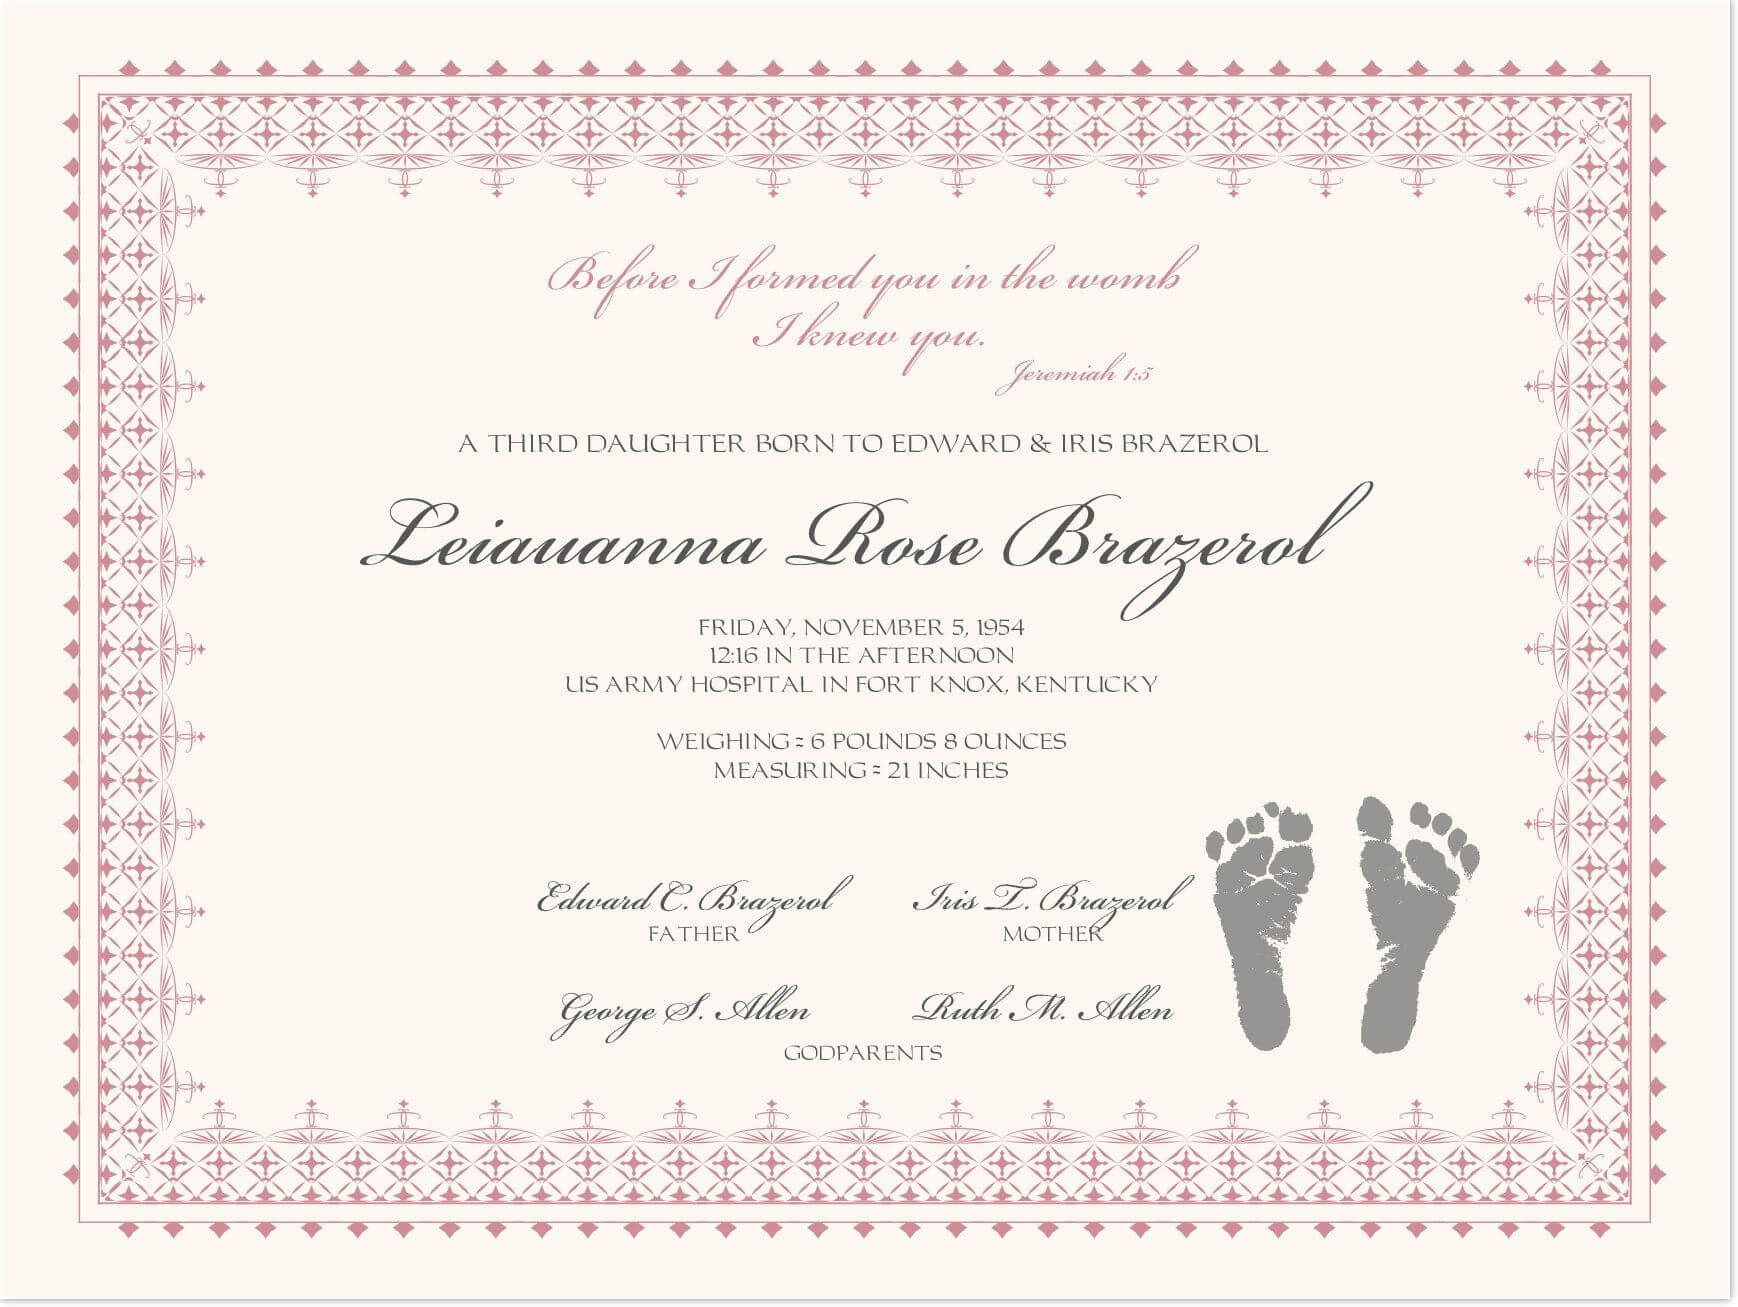 Footprints Baby Certificates | Baby | Baby Dedication Throughout Baby Dedication Certificate Template